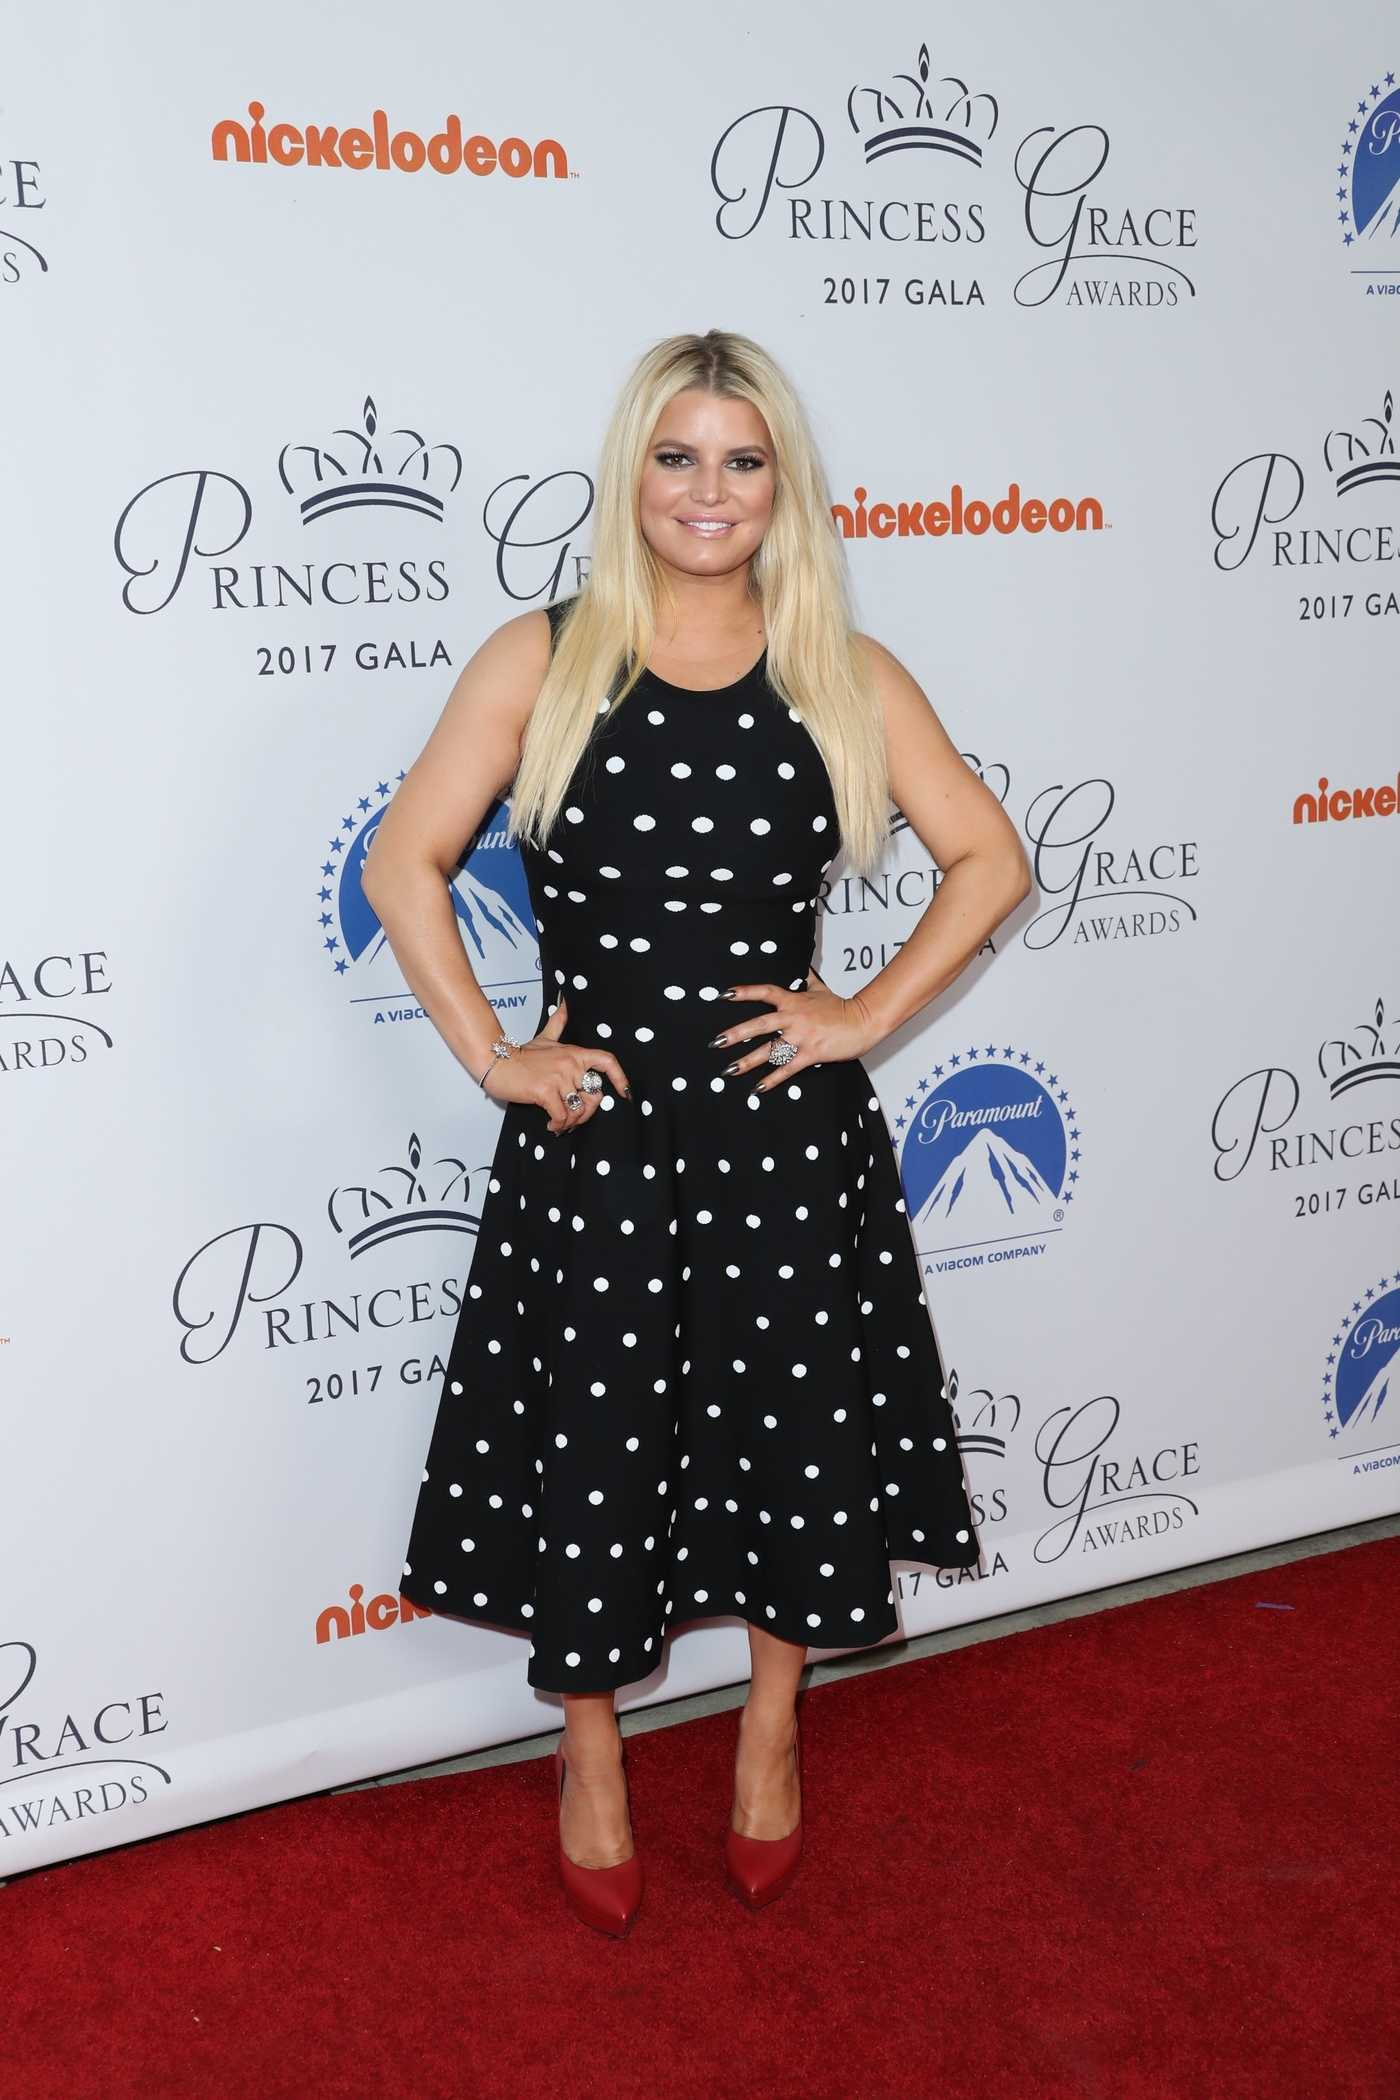 Jessica Simpson at 2017 Princess Grace Awards Gala Kickoff Event in Hollywood 10/24/2017